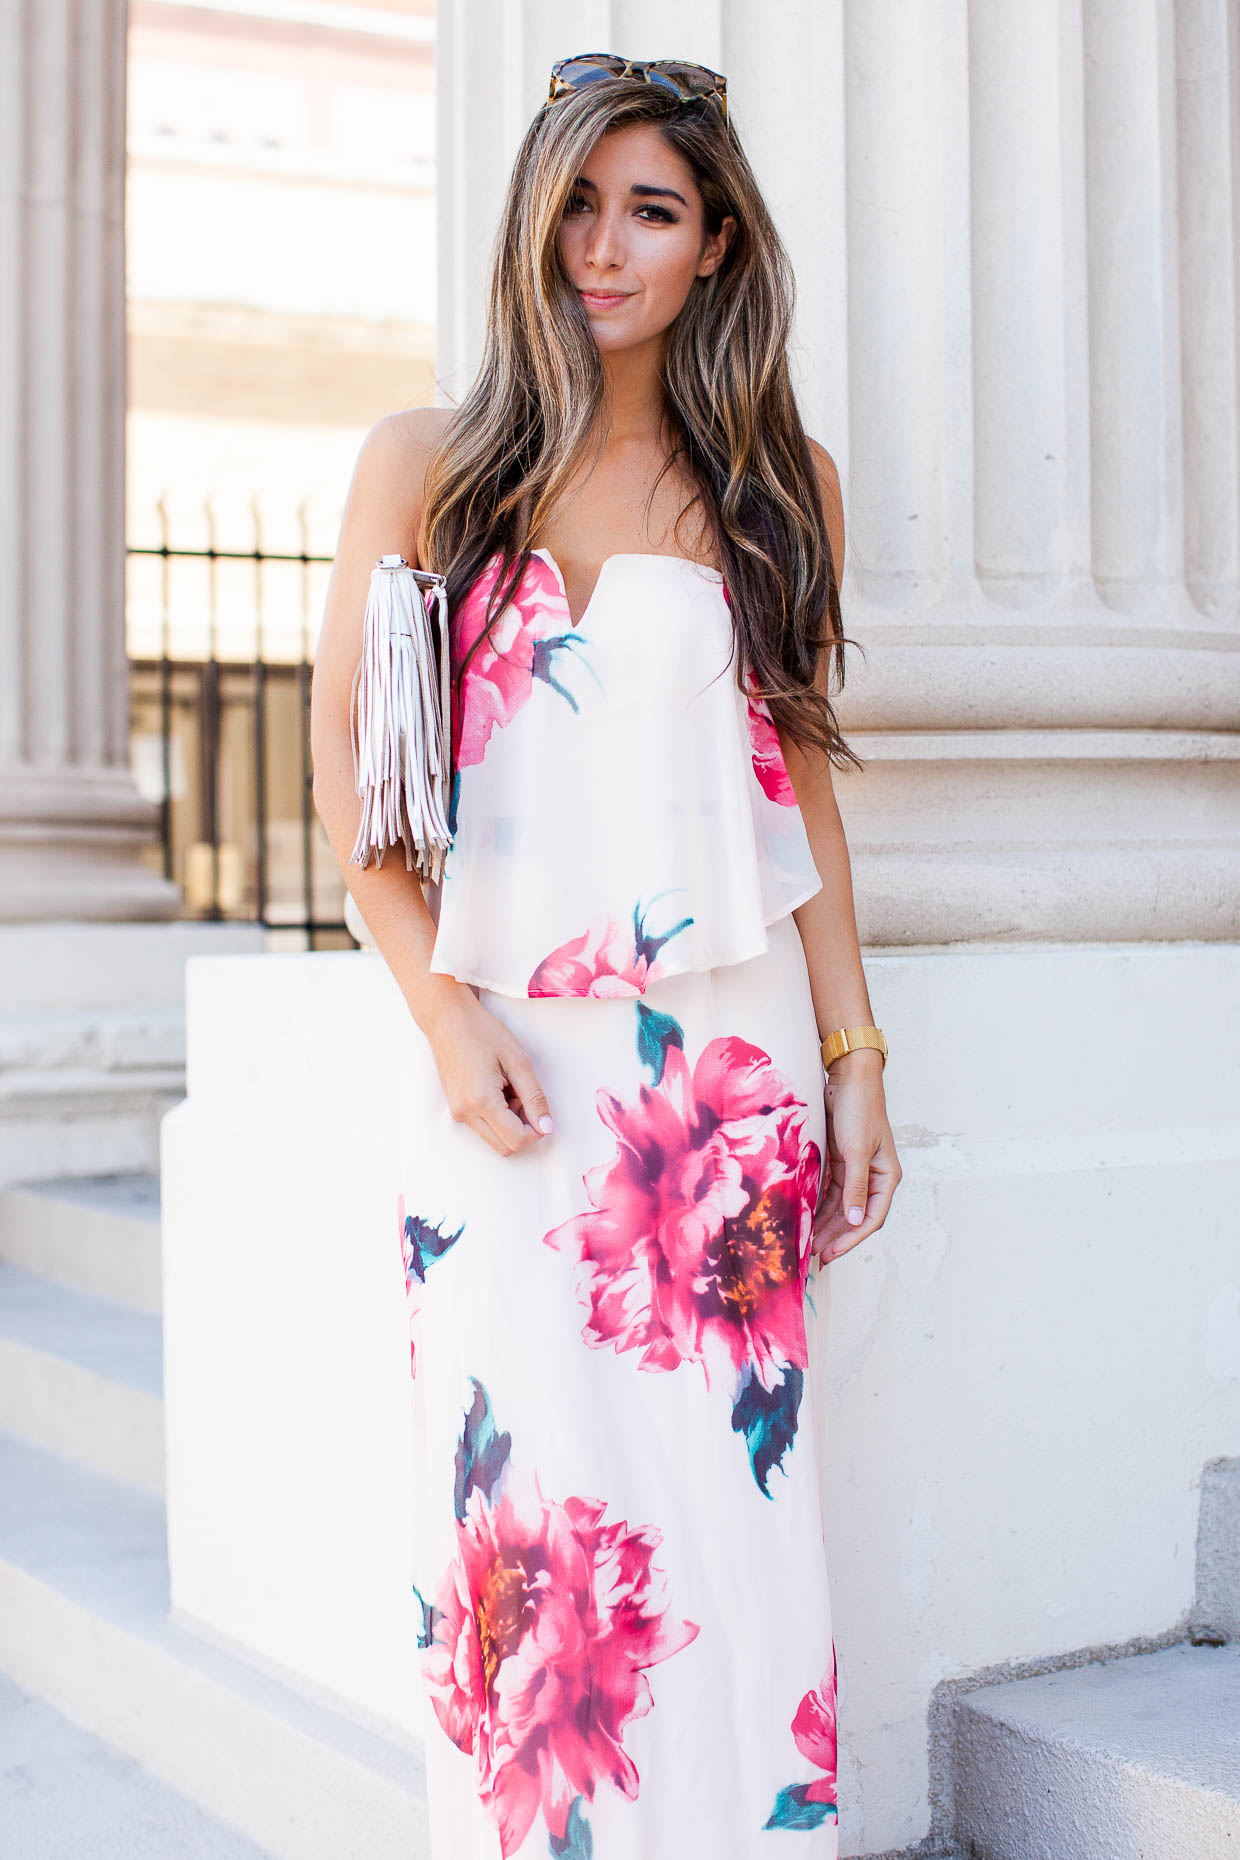 The Darling Detail wears Spring dress from Nordstrom